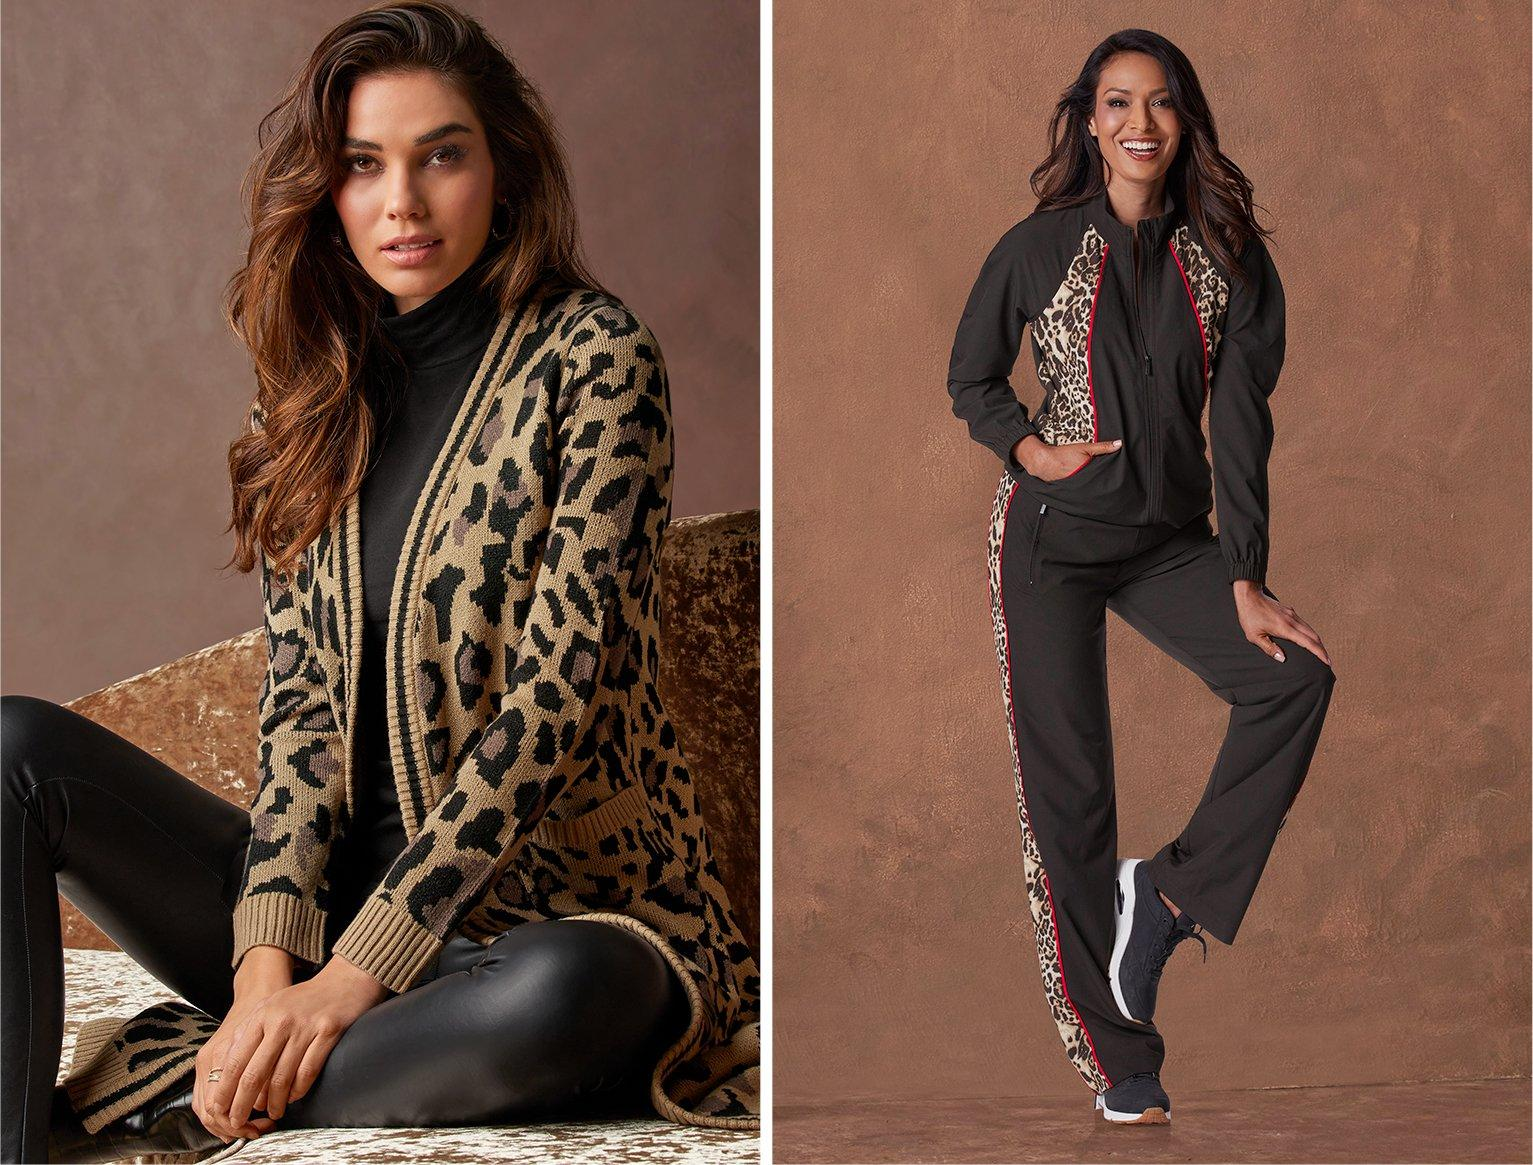 left model wearing a brown and black animal print long sweater duster, black turtleneck top, and black leather leggings. right model wearing a black and animal print sport warm-up and black sneakers.